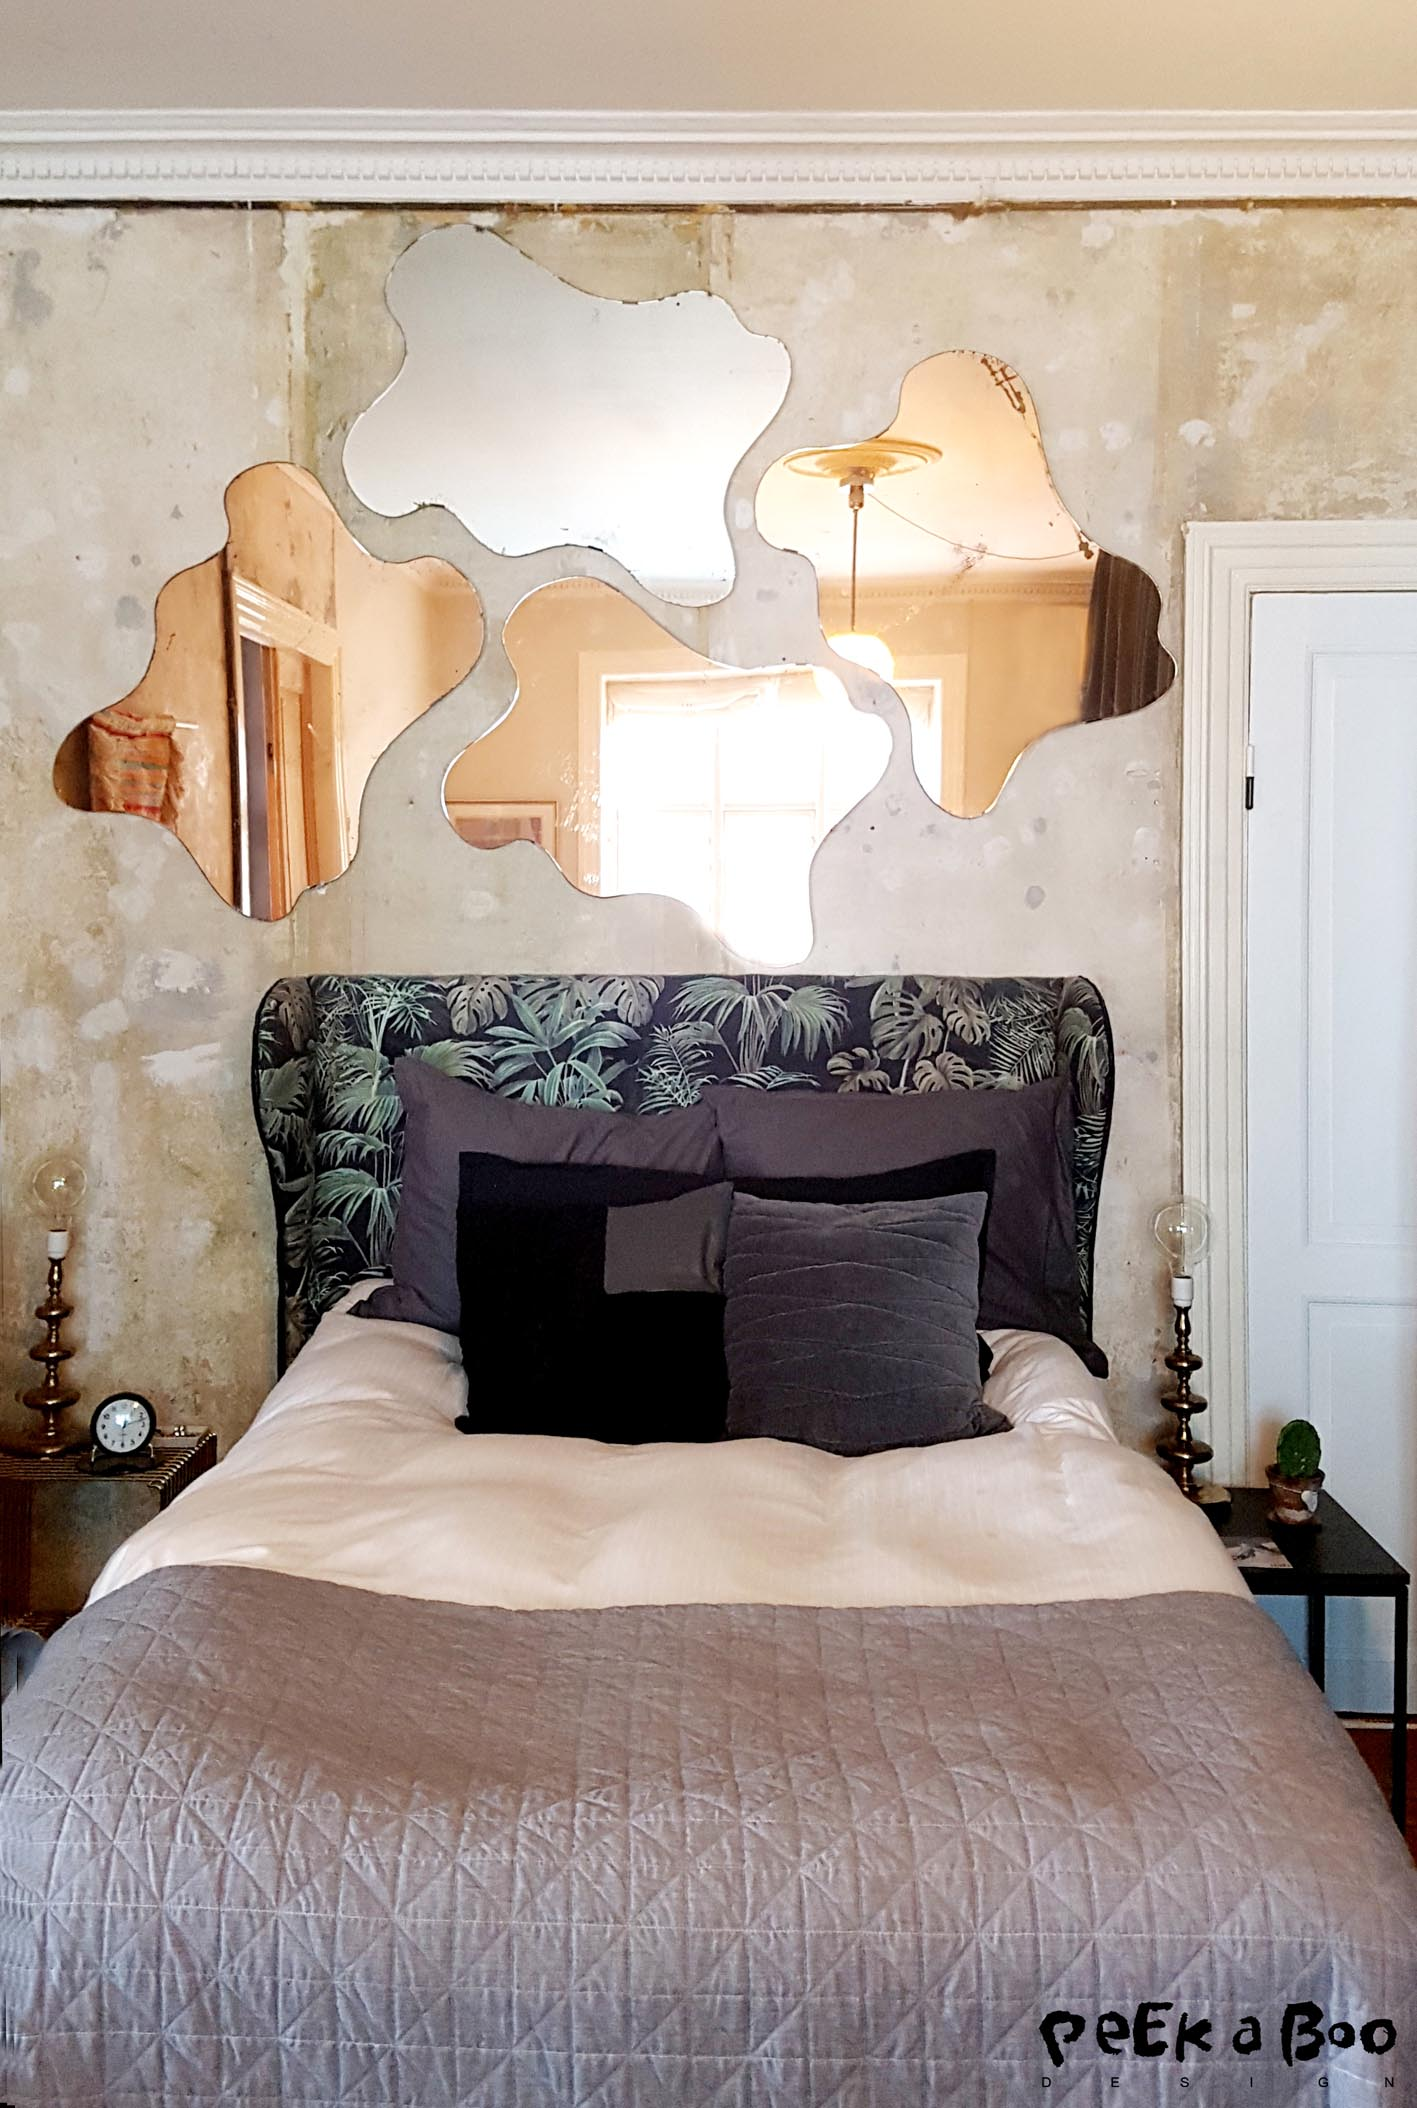 His and her side of the bed. The cloud shaped mirrors on the wall are secondhand finds. Three of them are in a cobber colour and one is plain. They are really unique and I have stored them for many years for one day to find the perfect spot for them....and that is here...do you agree?